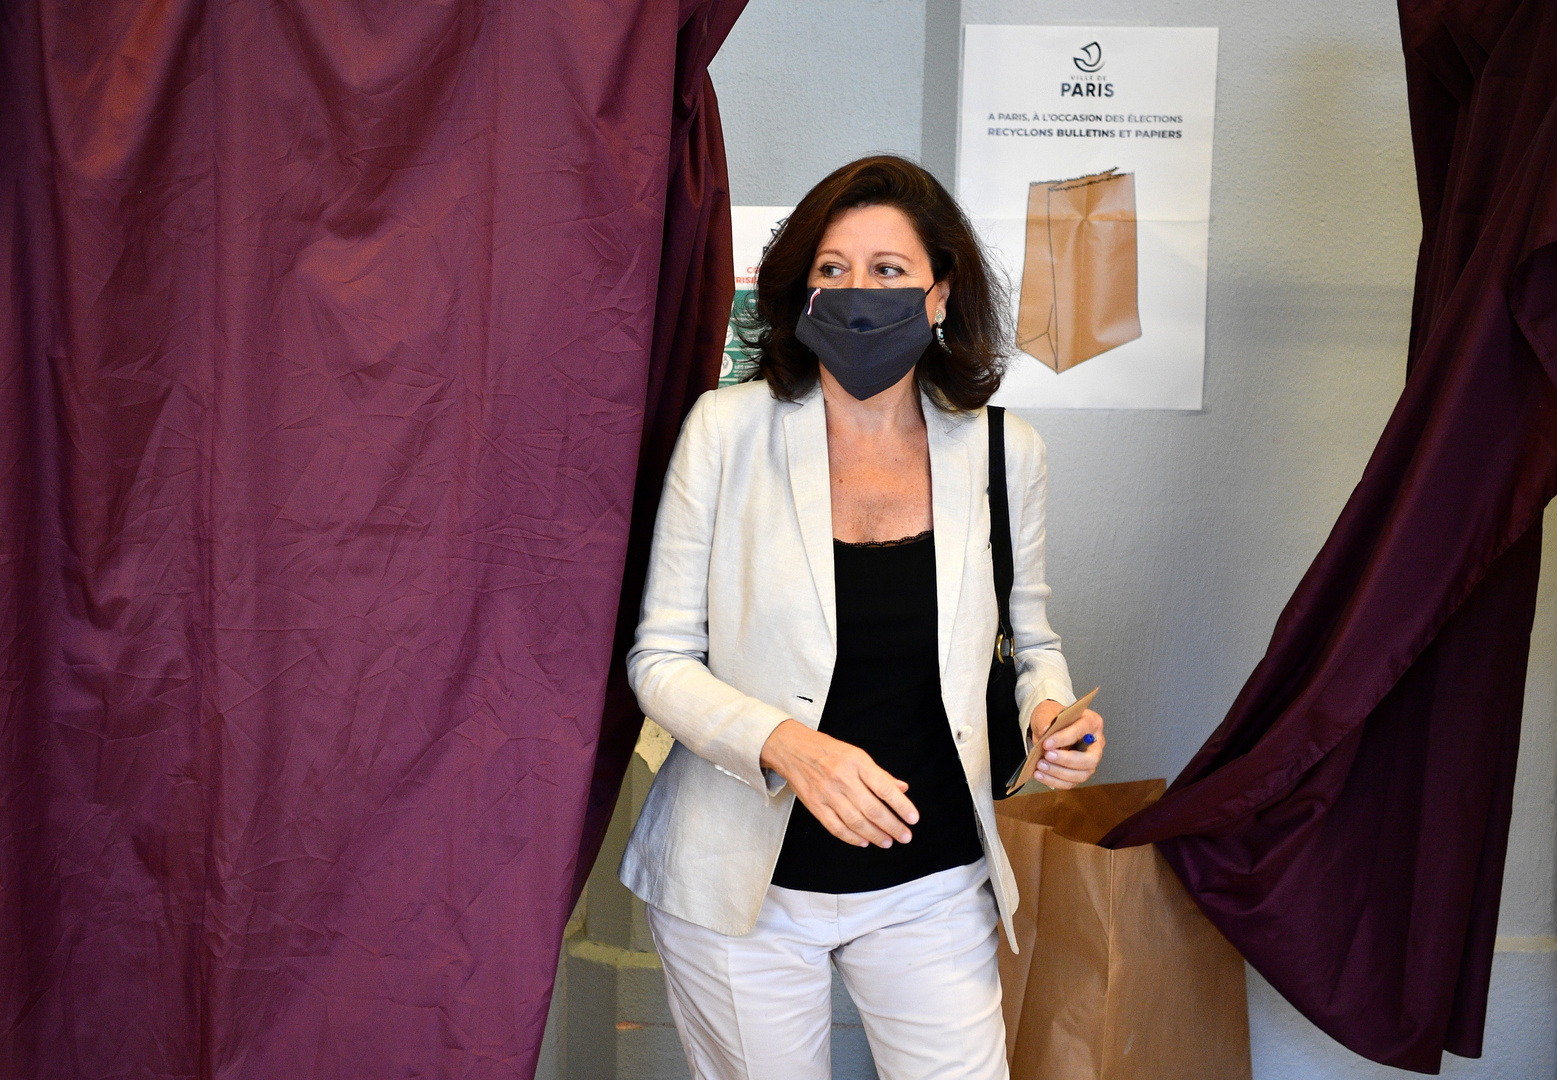 Investigation by former French health minister on the background of